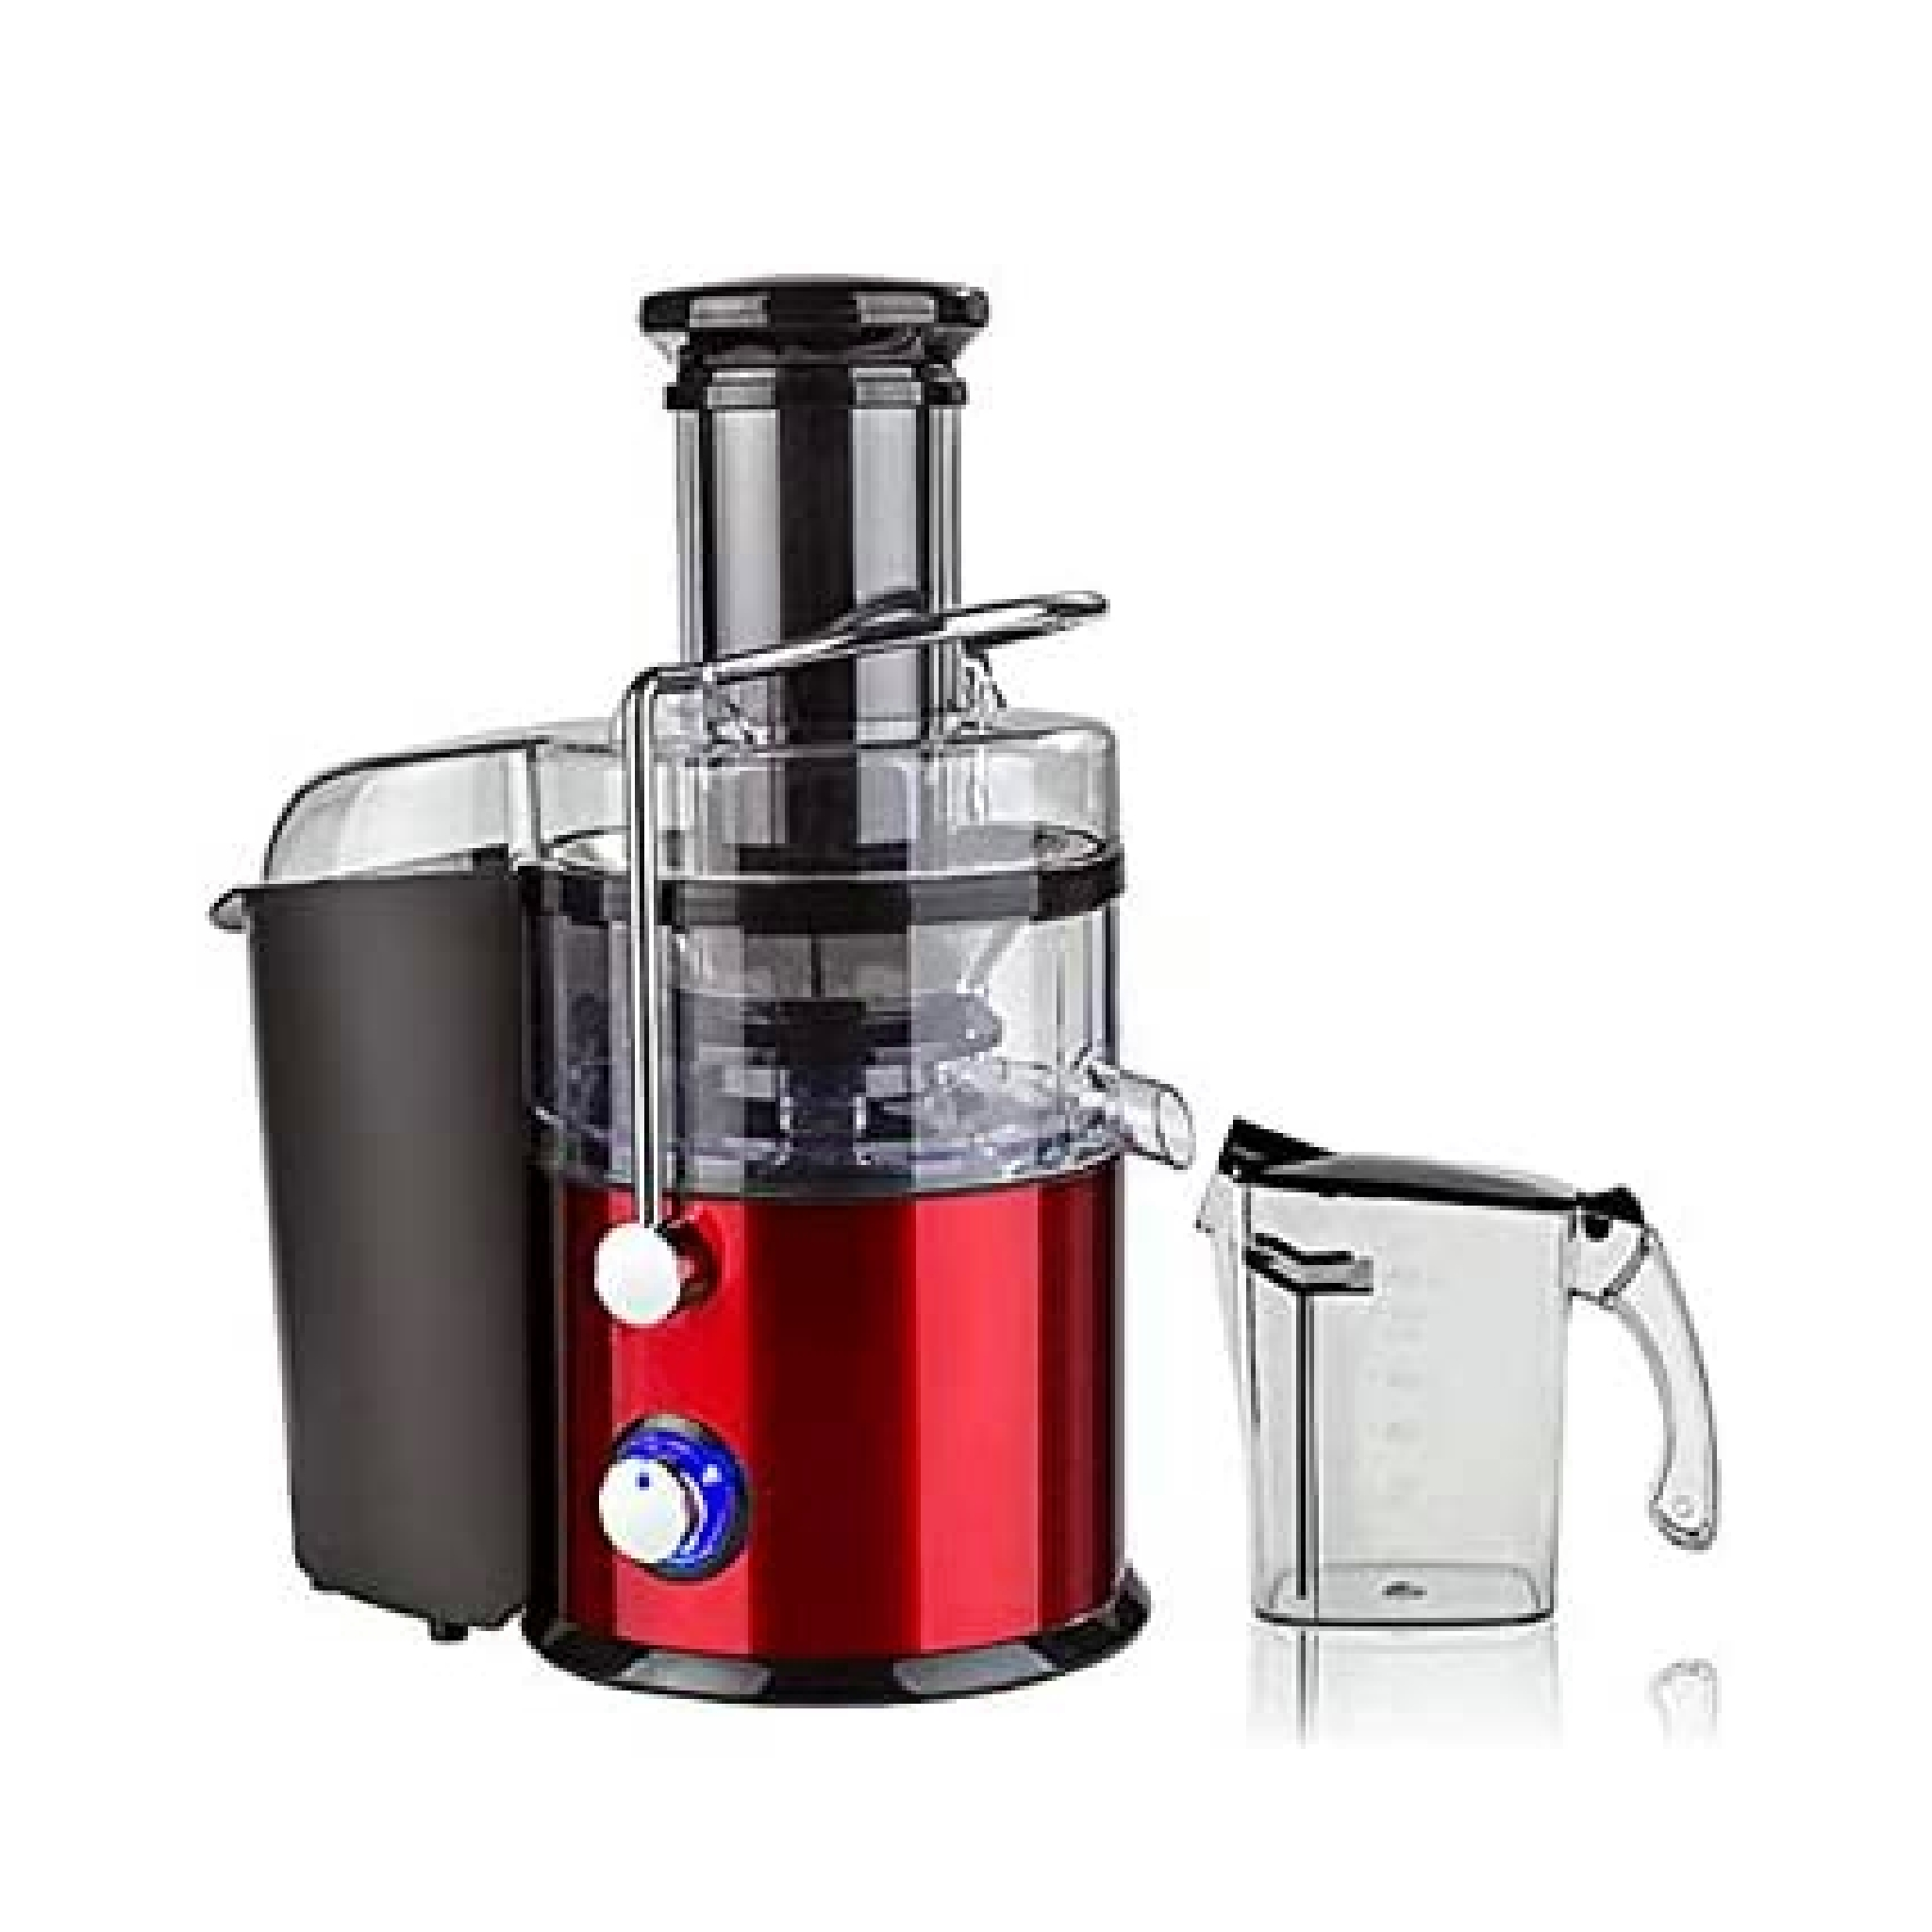 Geepas Centrifugal Juice Extractor - a juicer under 300 AED